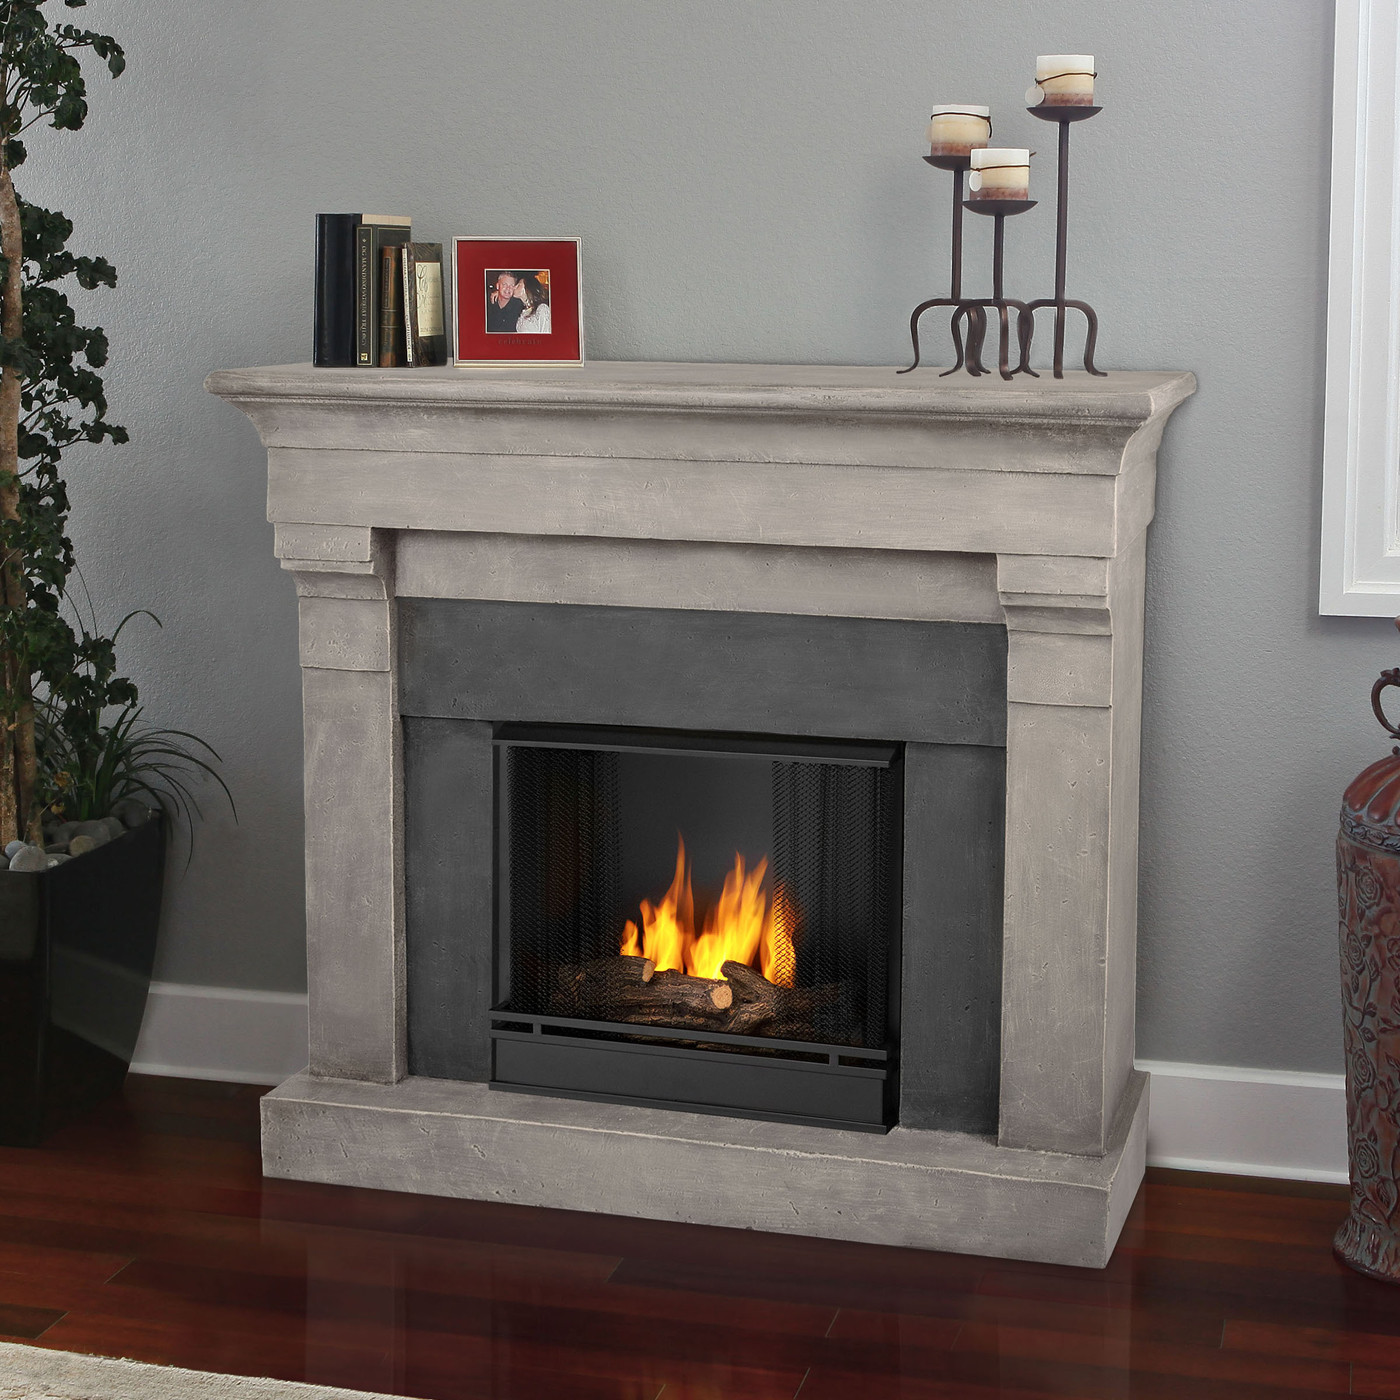 Best ideas about Real Flame Fireplace . Save or Pin Real Flame Torrence Cast Gel Fuel Fireplace Now.